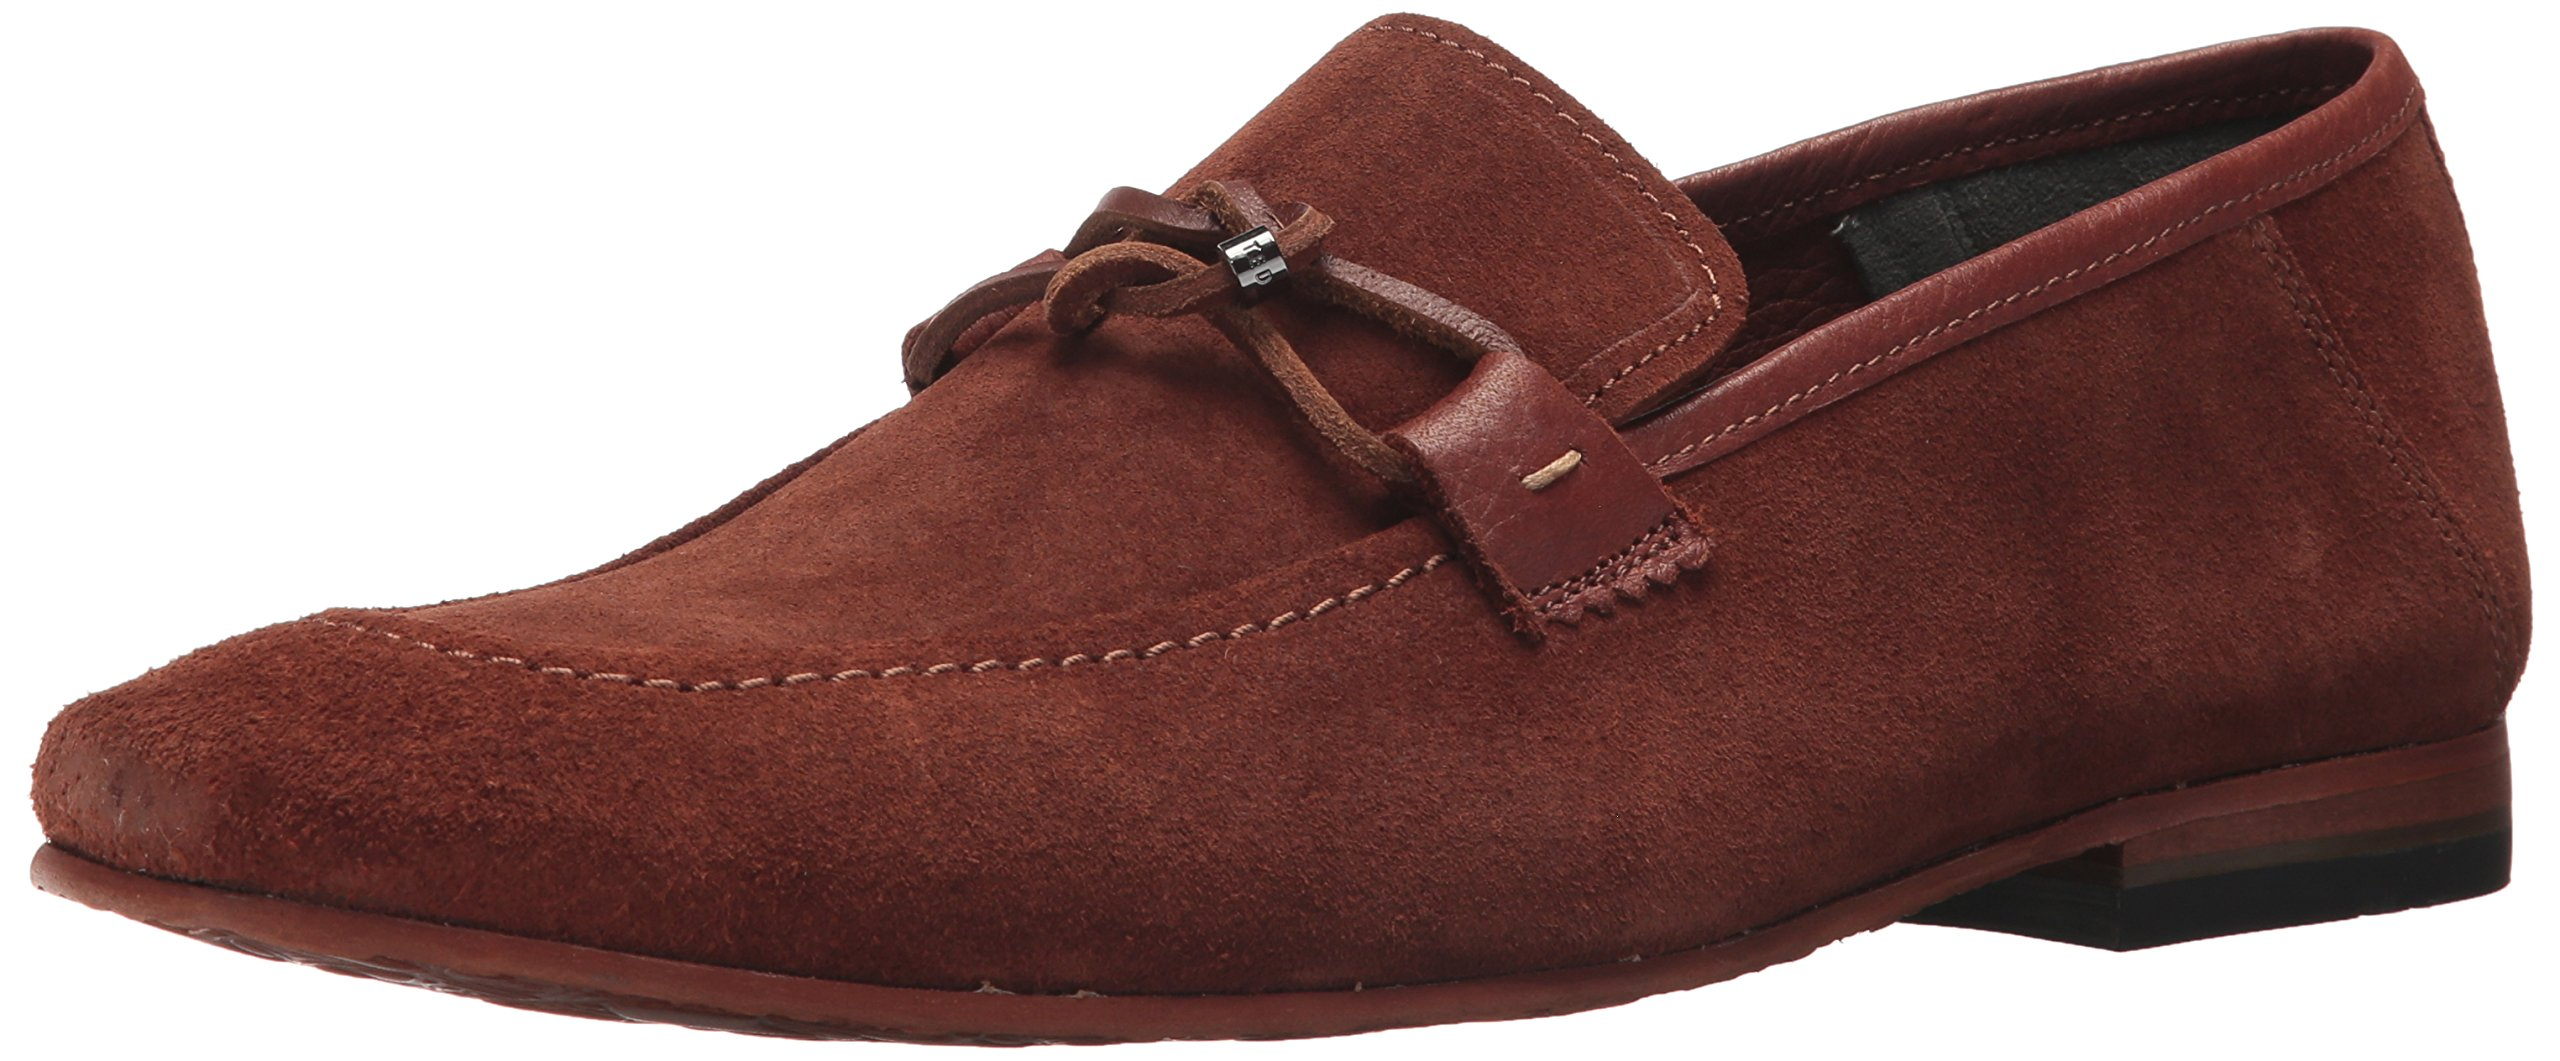 Ted Baker Men's Hoppken Loafer, Dark Tan, 11 D(M) US by Ted Baker (Image #1)